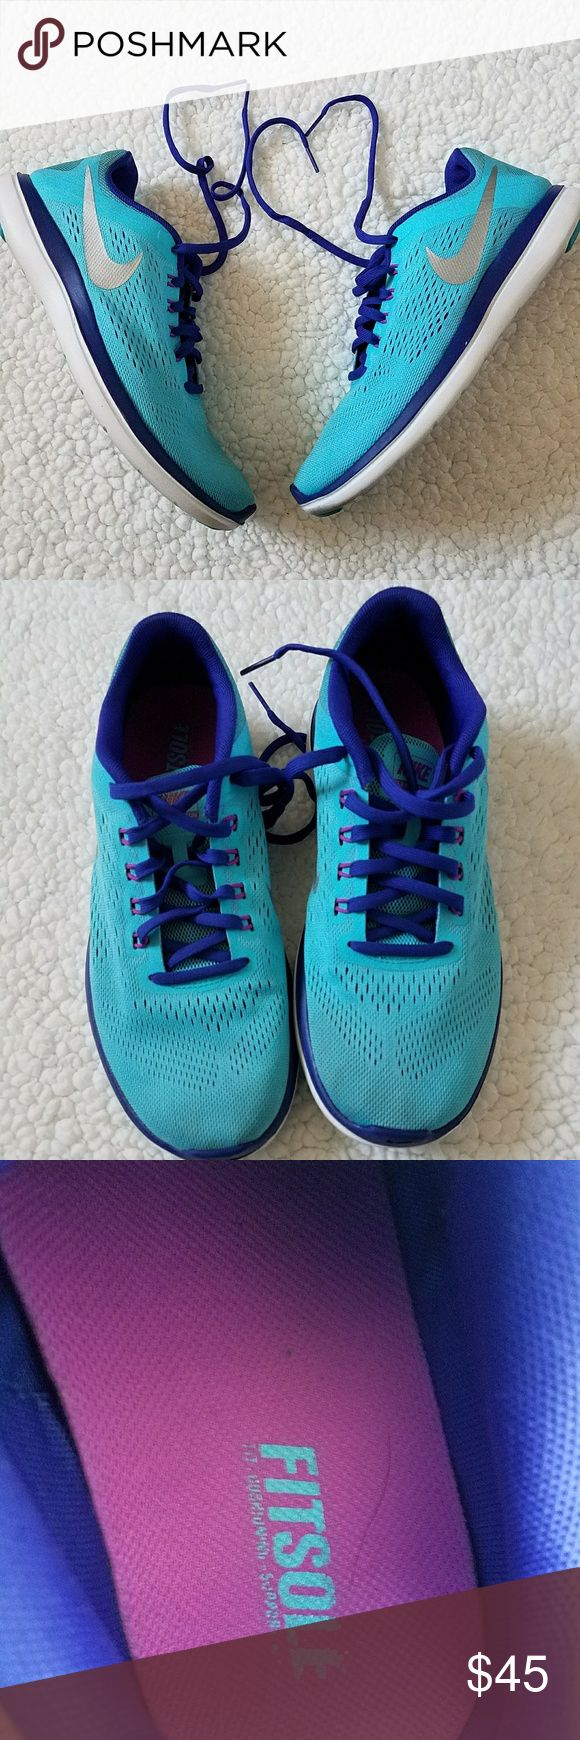 Nike Flex 2016 rn 🔹 Like New Condition 🔹 These shoes are a beautiful blue and purple color. Sure to capture anyone's attention. 🔹 Perfect for the gym, or for errands. 🔹 Super comfortable and flexible. 🚫 Trades  ***** These were the display model at a local store. Original box NOT included. Nike Shoes Athletic Shoes